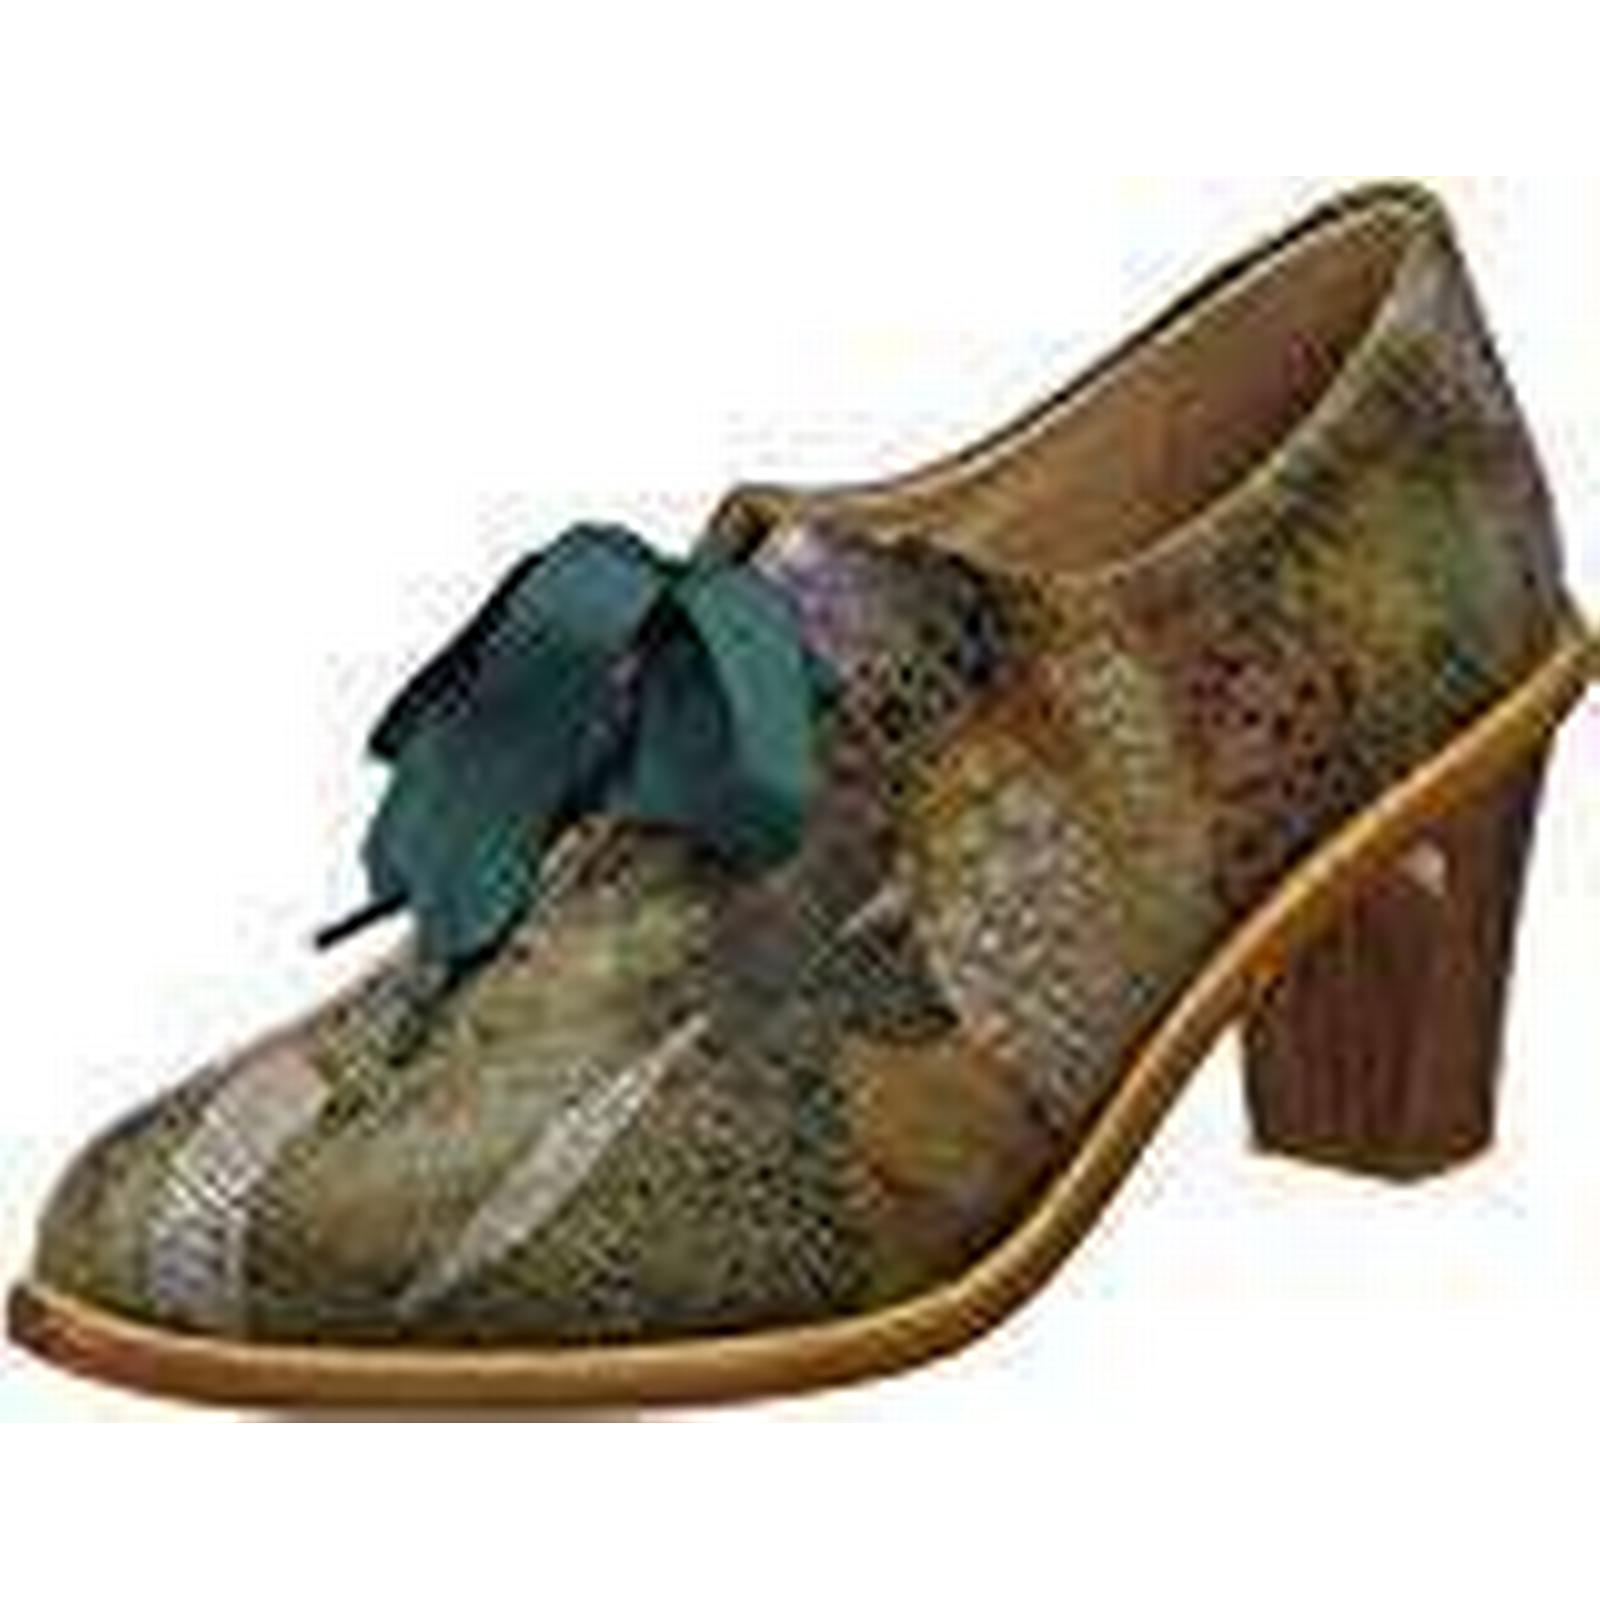 Neosens Women''s S534 Fantasy Floral Multicolour, Taupe/Cynthia Closed Toe Heels, Multicolour, Floral 5 UK 1c90d9